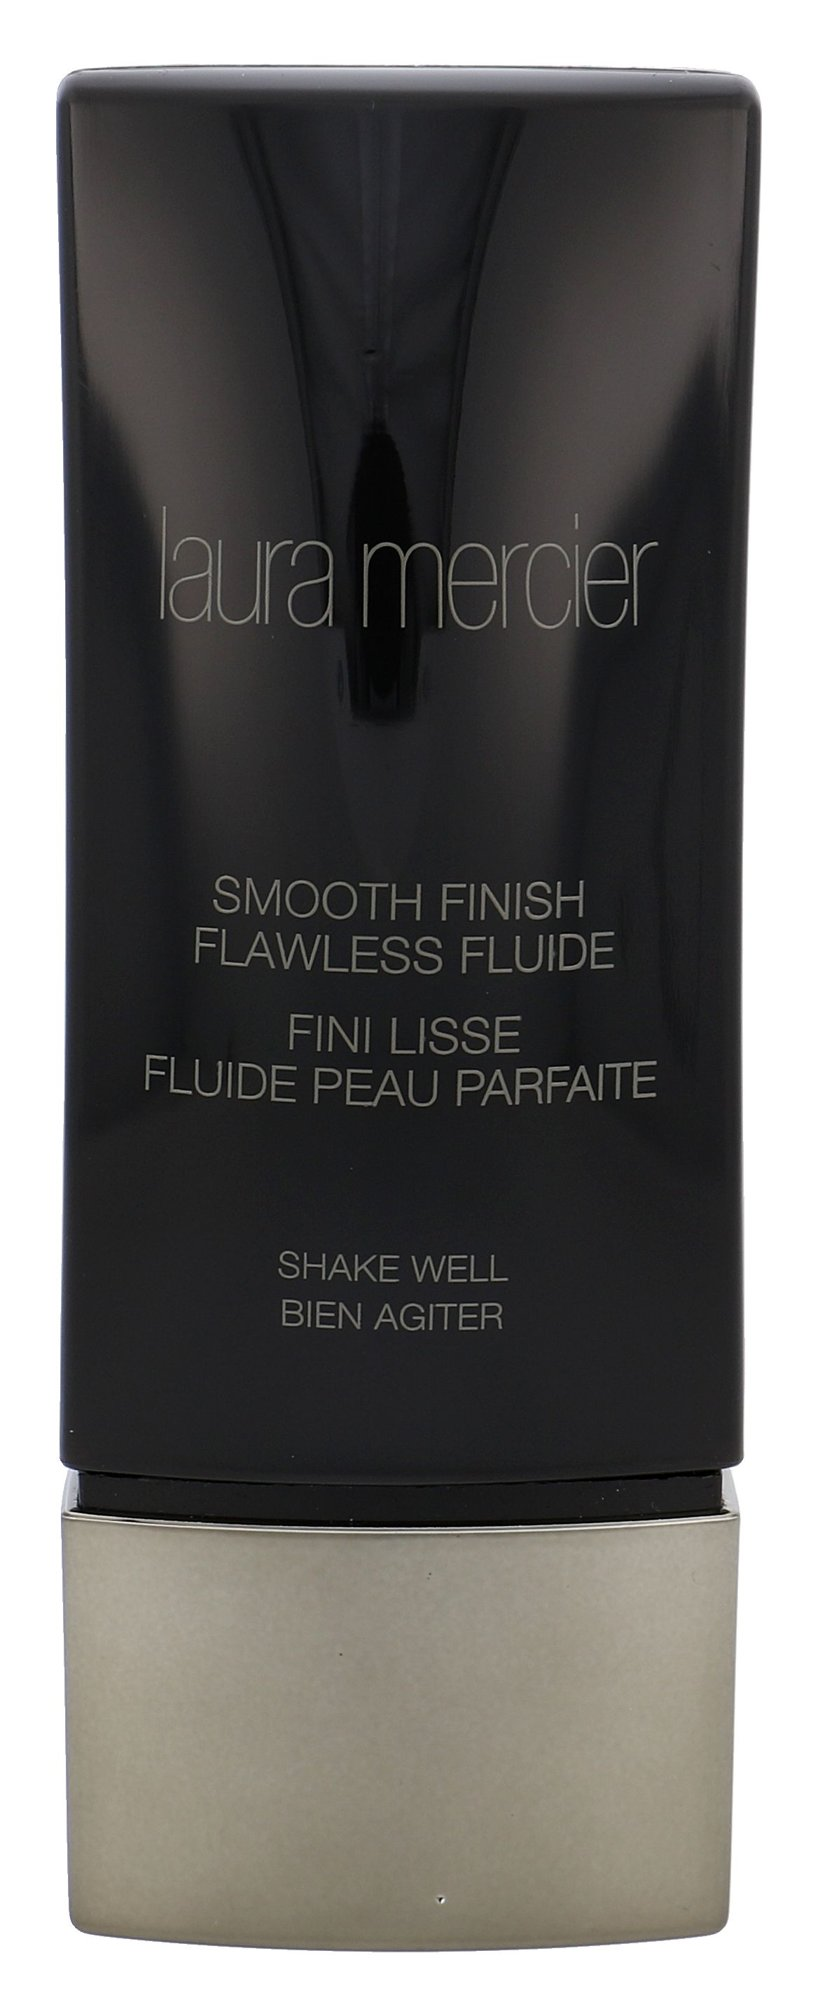 Laura Mercier Smooth Finish Flawless Fluide Cosmetic 30ml Shell